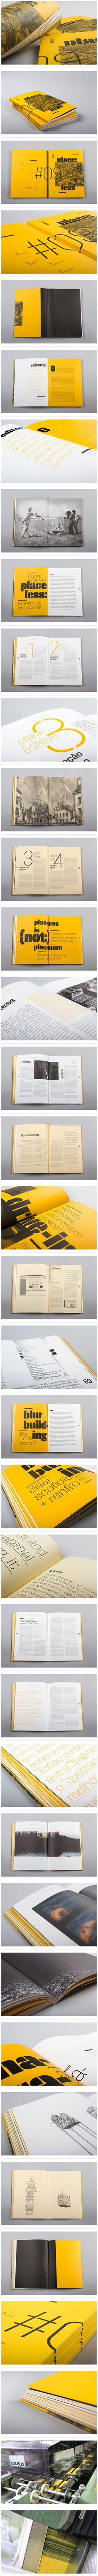 Yellow with black and white type is pretty close to perfection. Go Light Type.